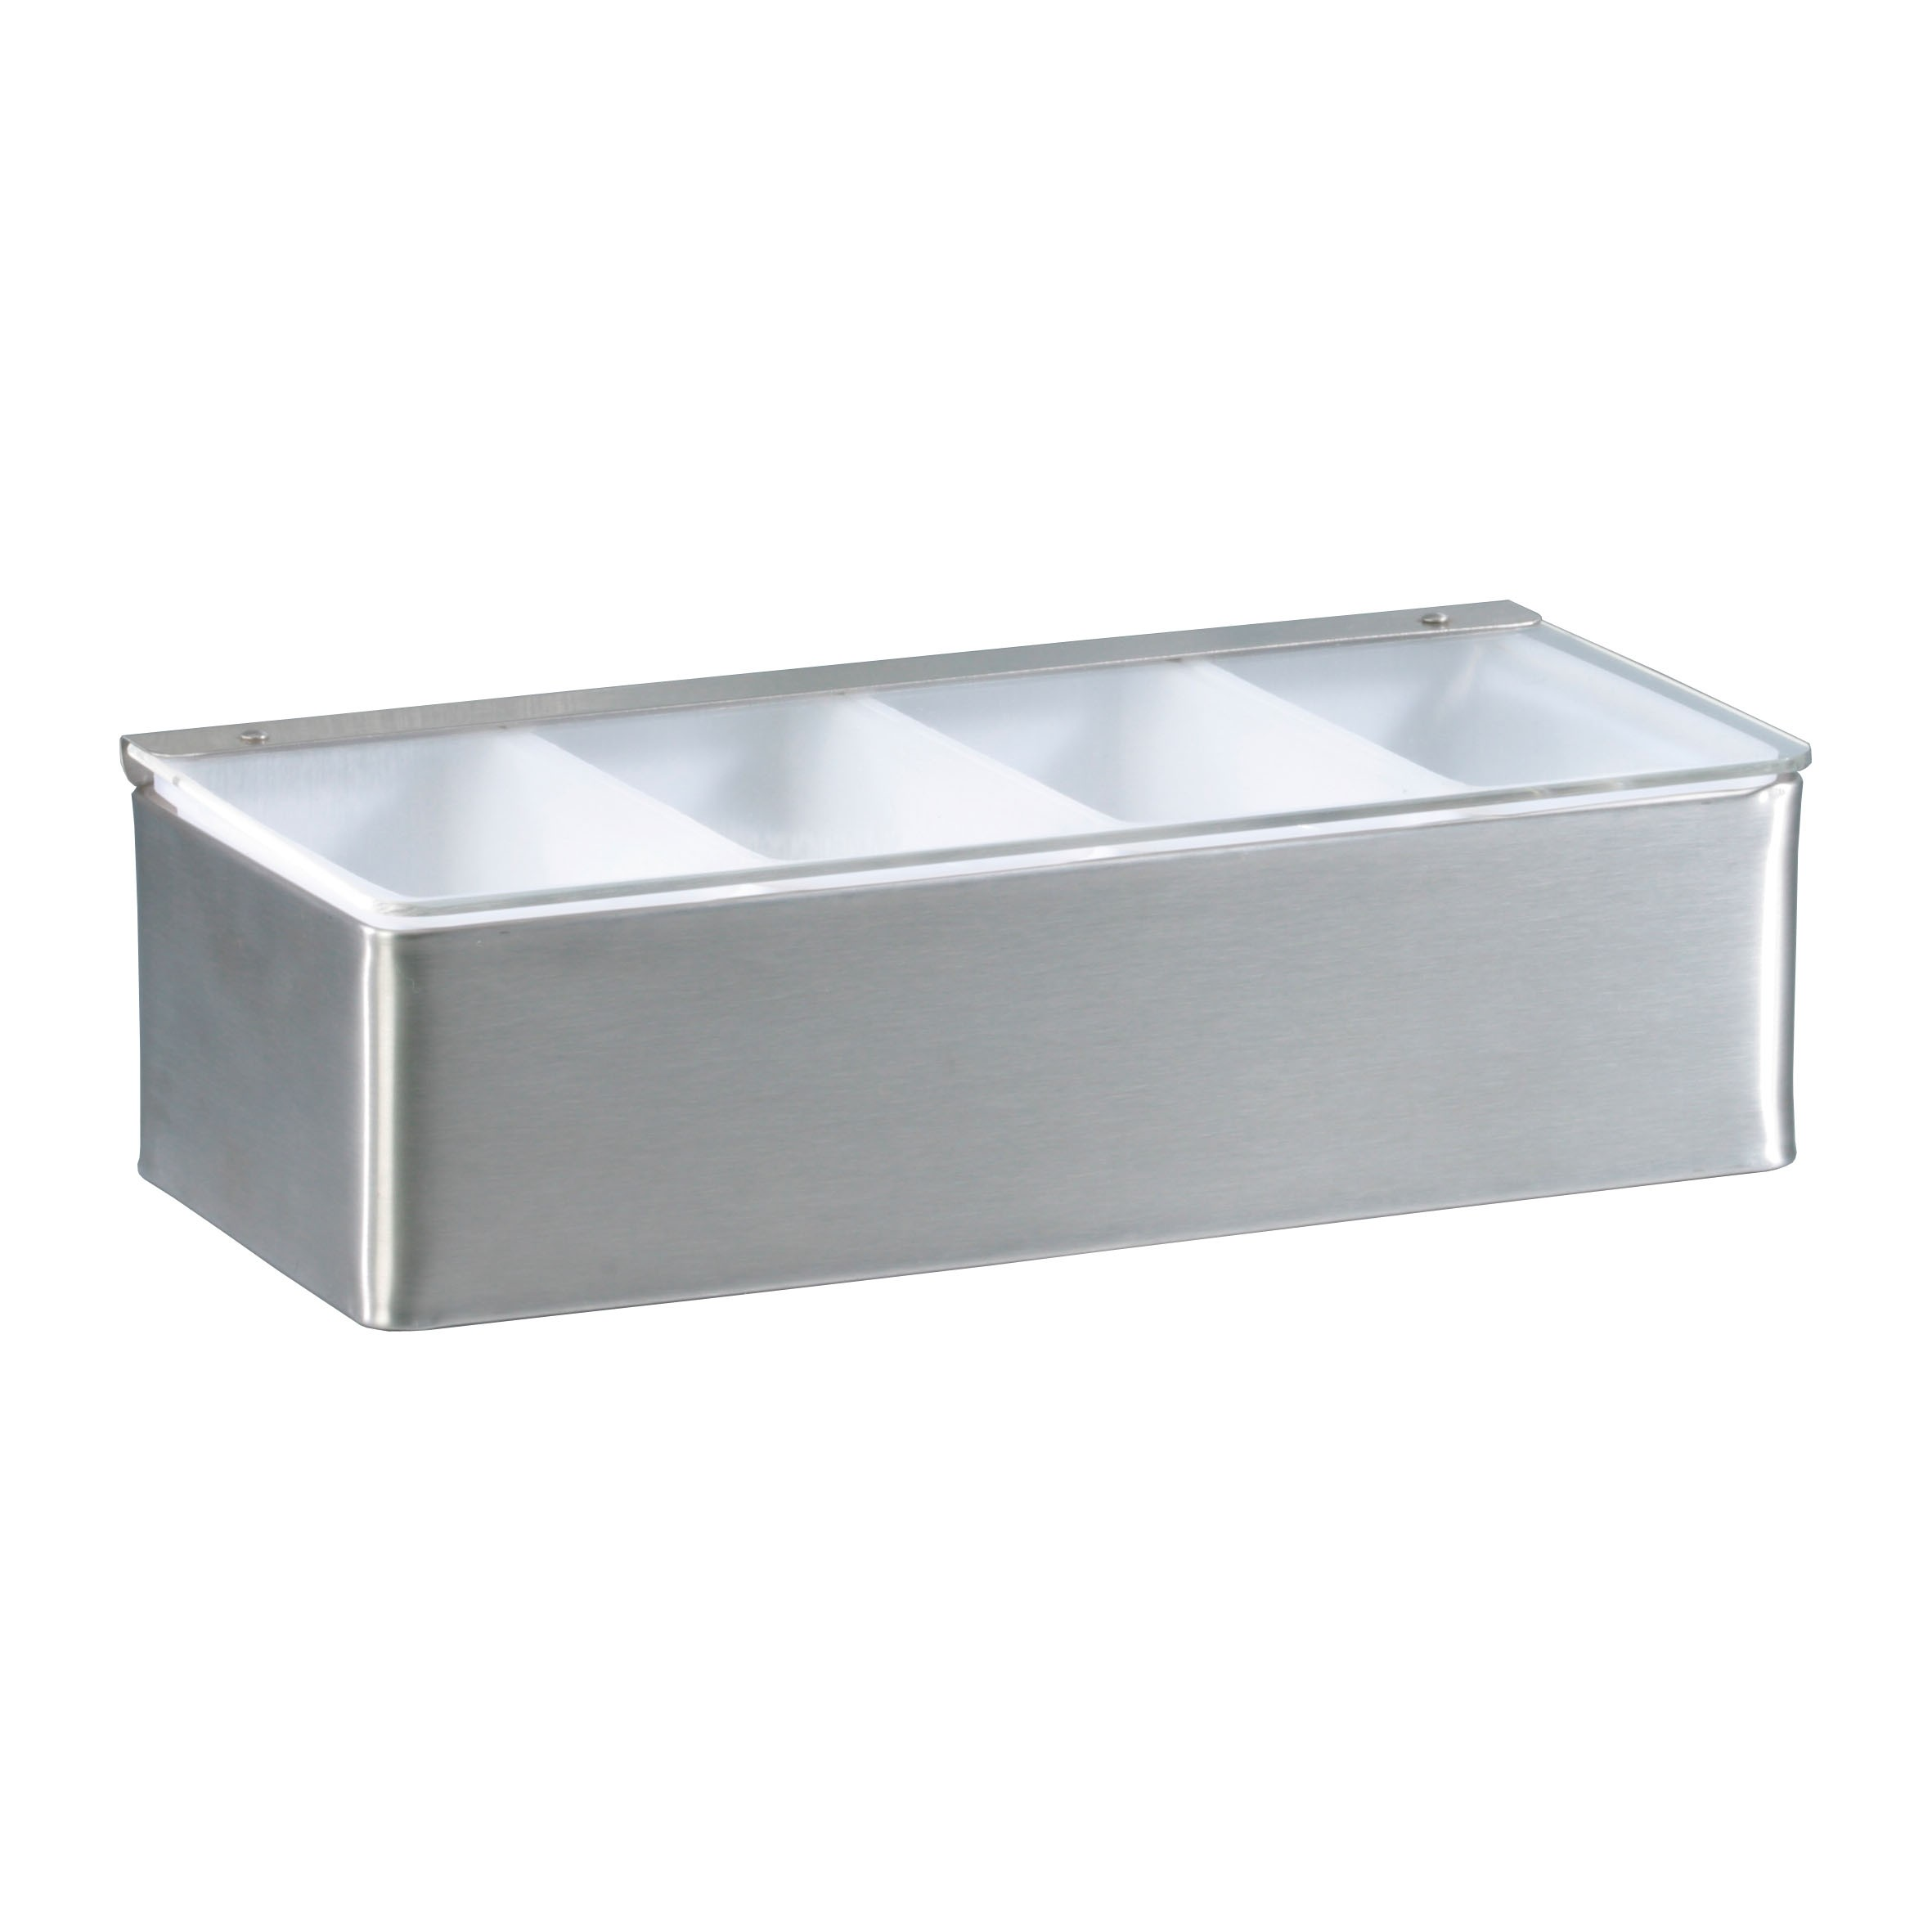 Condiment Dispenser 4 Compartments Stainless Steel